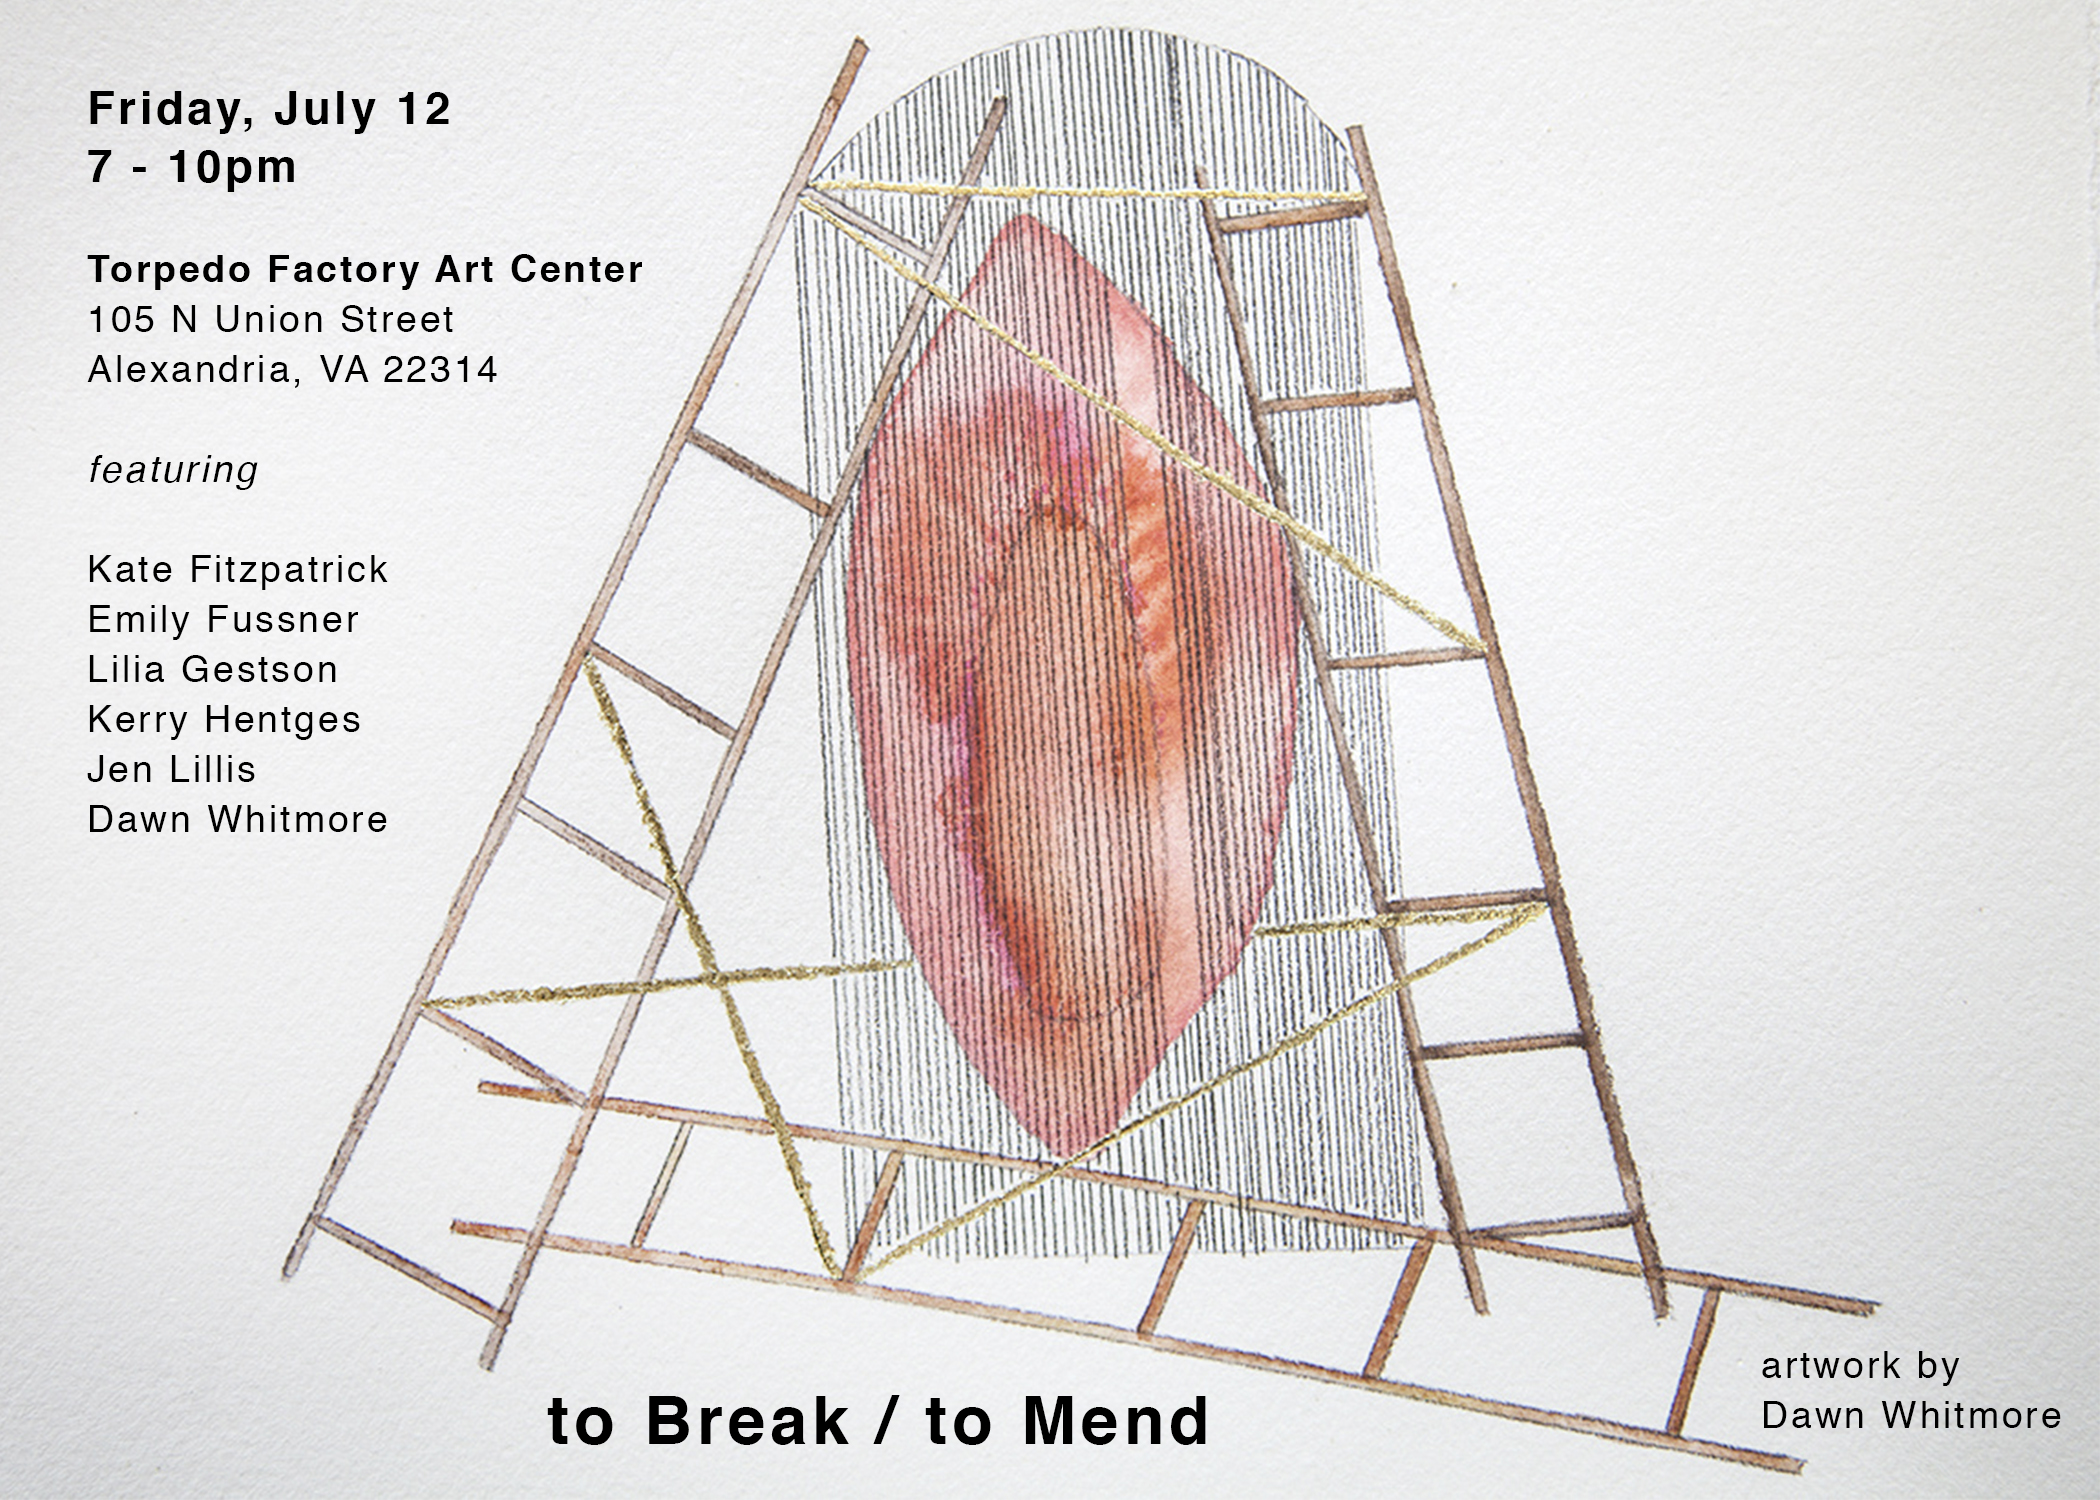 to Break / to Mend , featuring Kate Fitzpatrick, Emily Fussner, Lilia Gestson, Kerry Hentges, Jen Lillis, and Dawn Whitmore. Curated by Danielle Dravenstadt